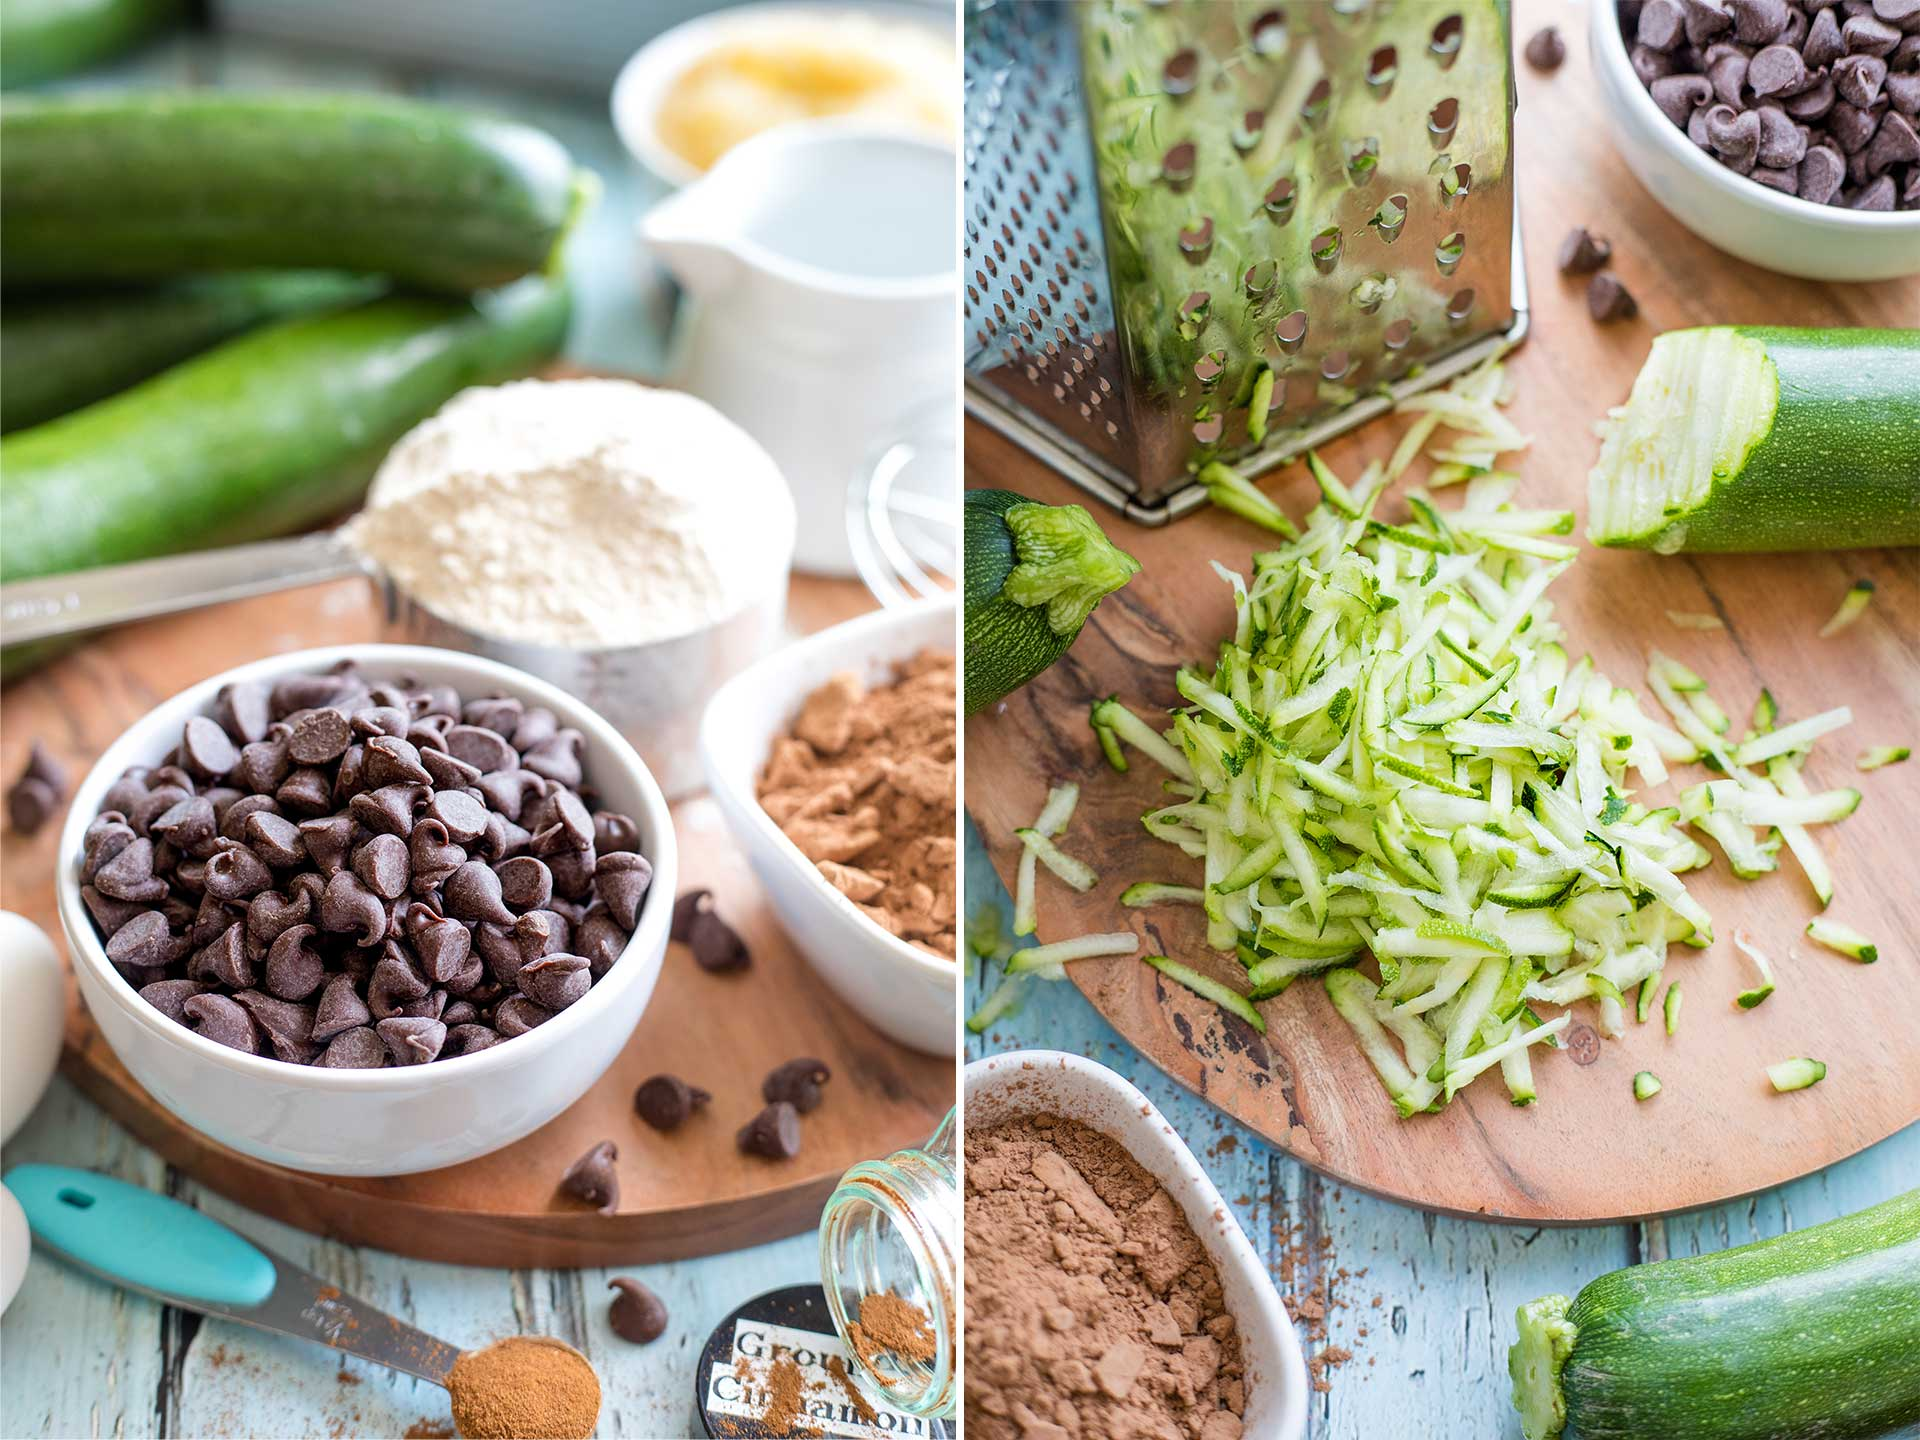 collage of two side-by-side photos, one showing ingredients for the zucchini cake, and the other specifically showing the zucchini being grated with a box grater